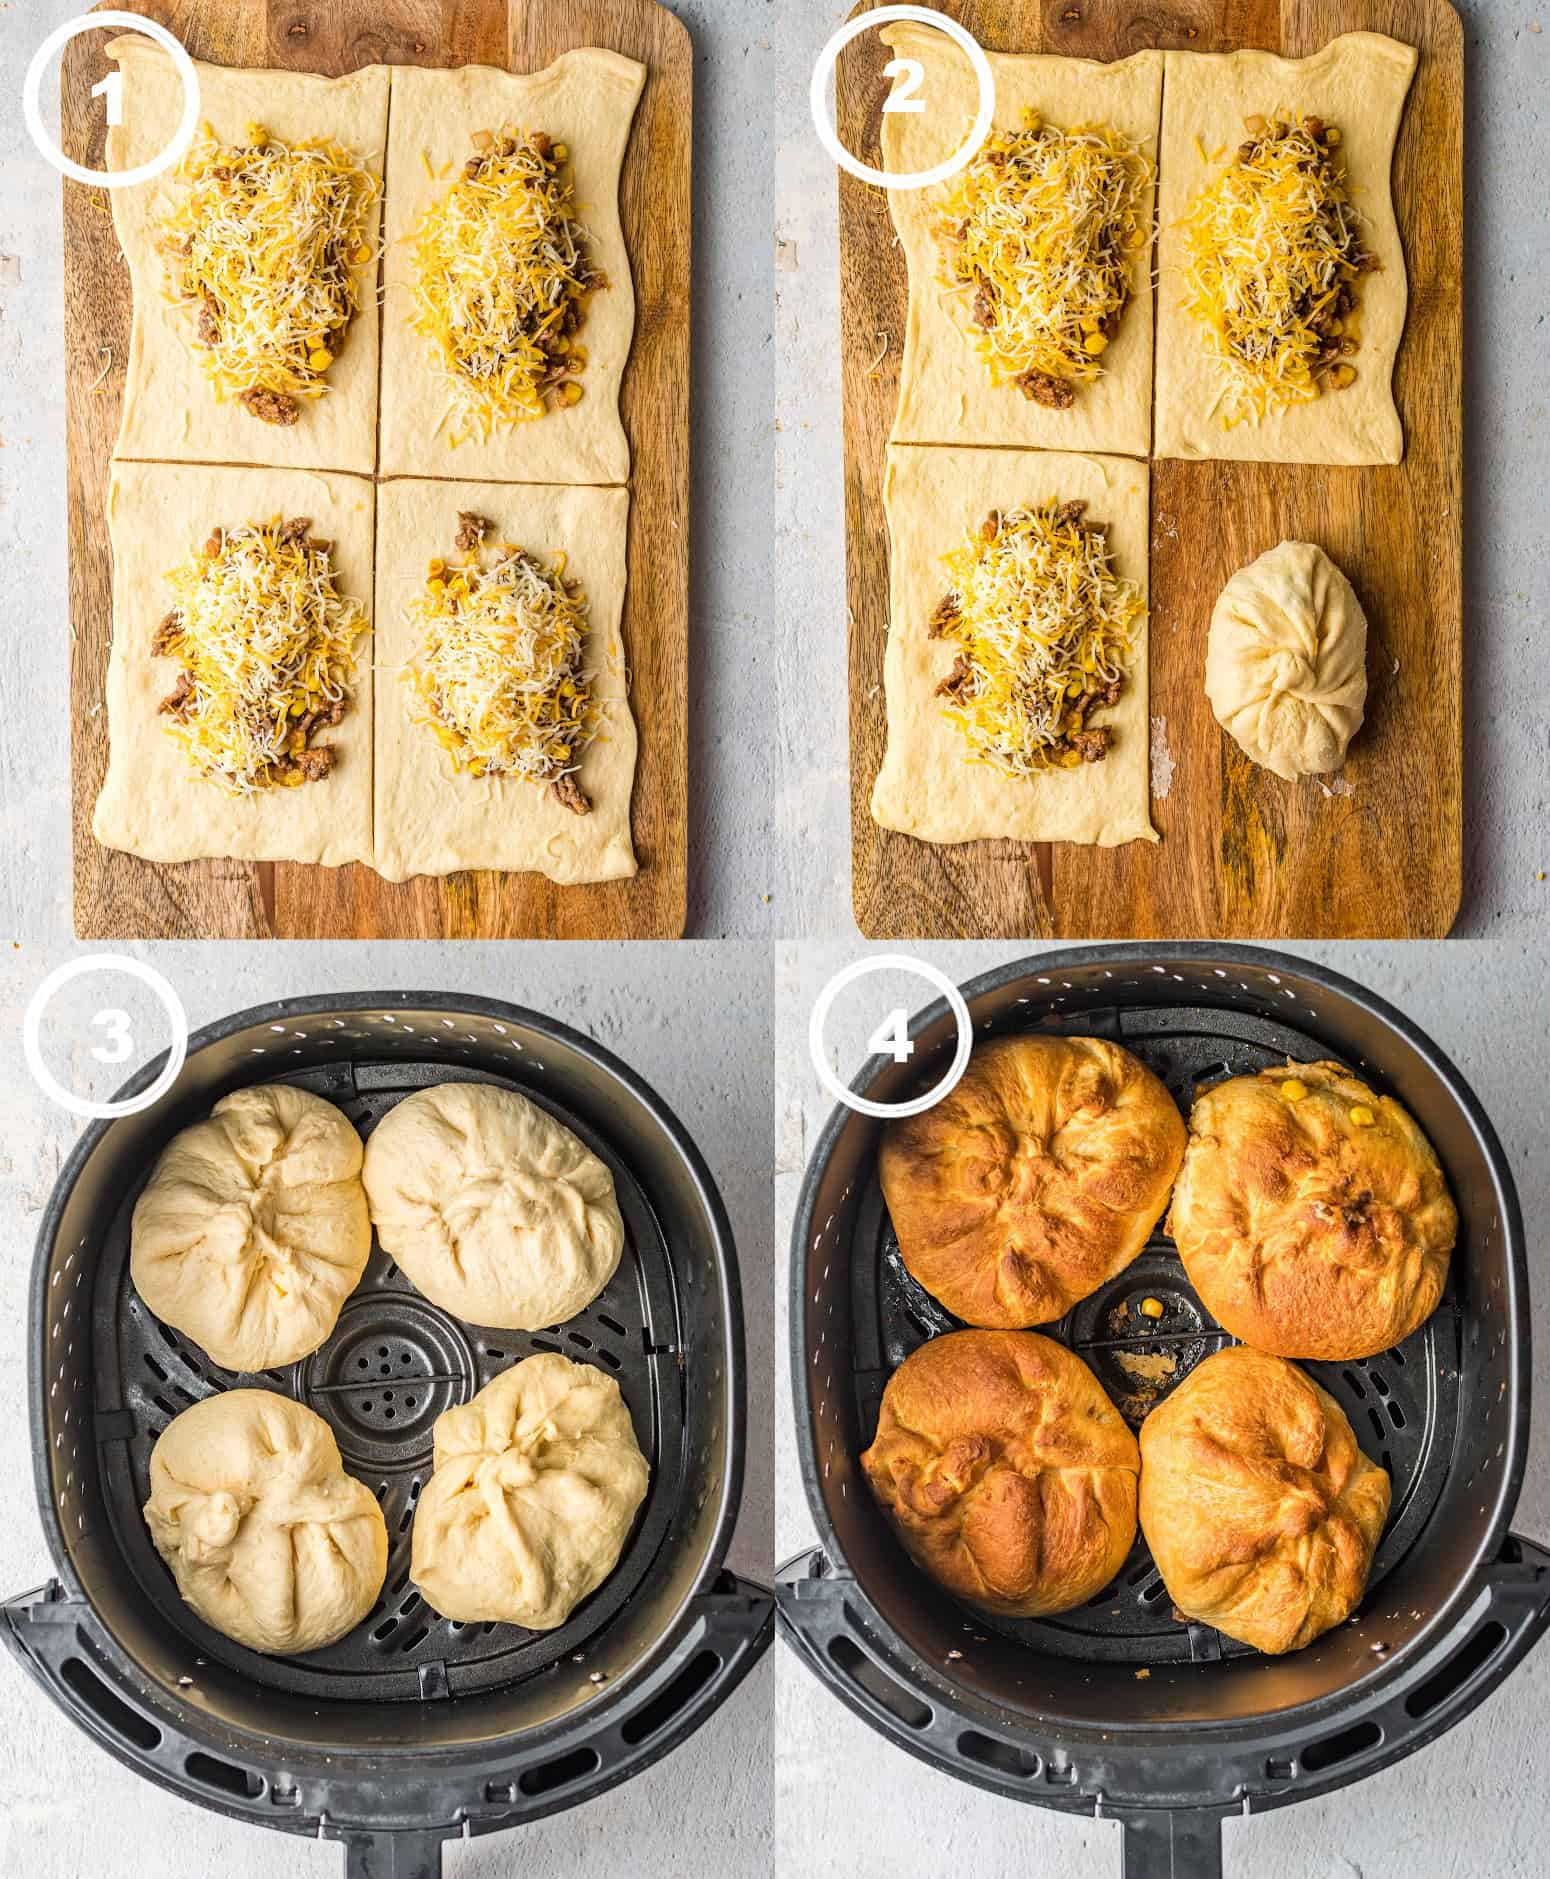 Four process photos. First one, crescent dough cut into four pieces and a scoop of taco meat and cheese on each square. Secone one, one square that has been twisted and ppinched into a square. Four taco stuffed dough balls placed into an air fryer. Fourth one, four doiugh balls that have been air fried and cooked to perfection.